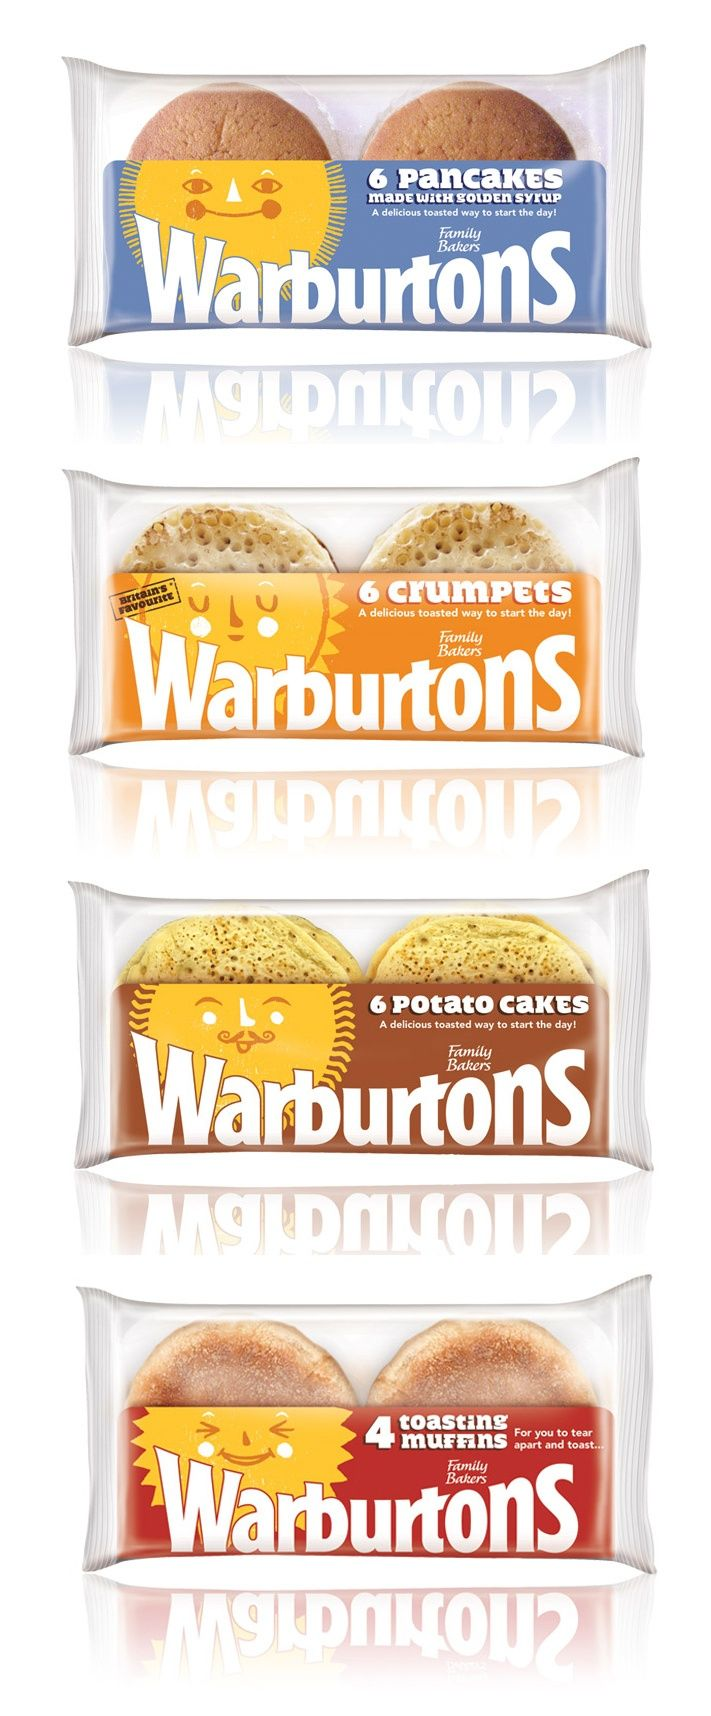 WARBURTONS - Cute cake packaging PD